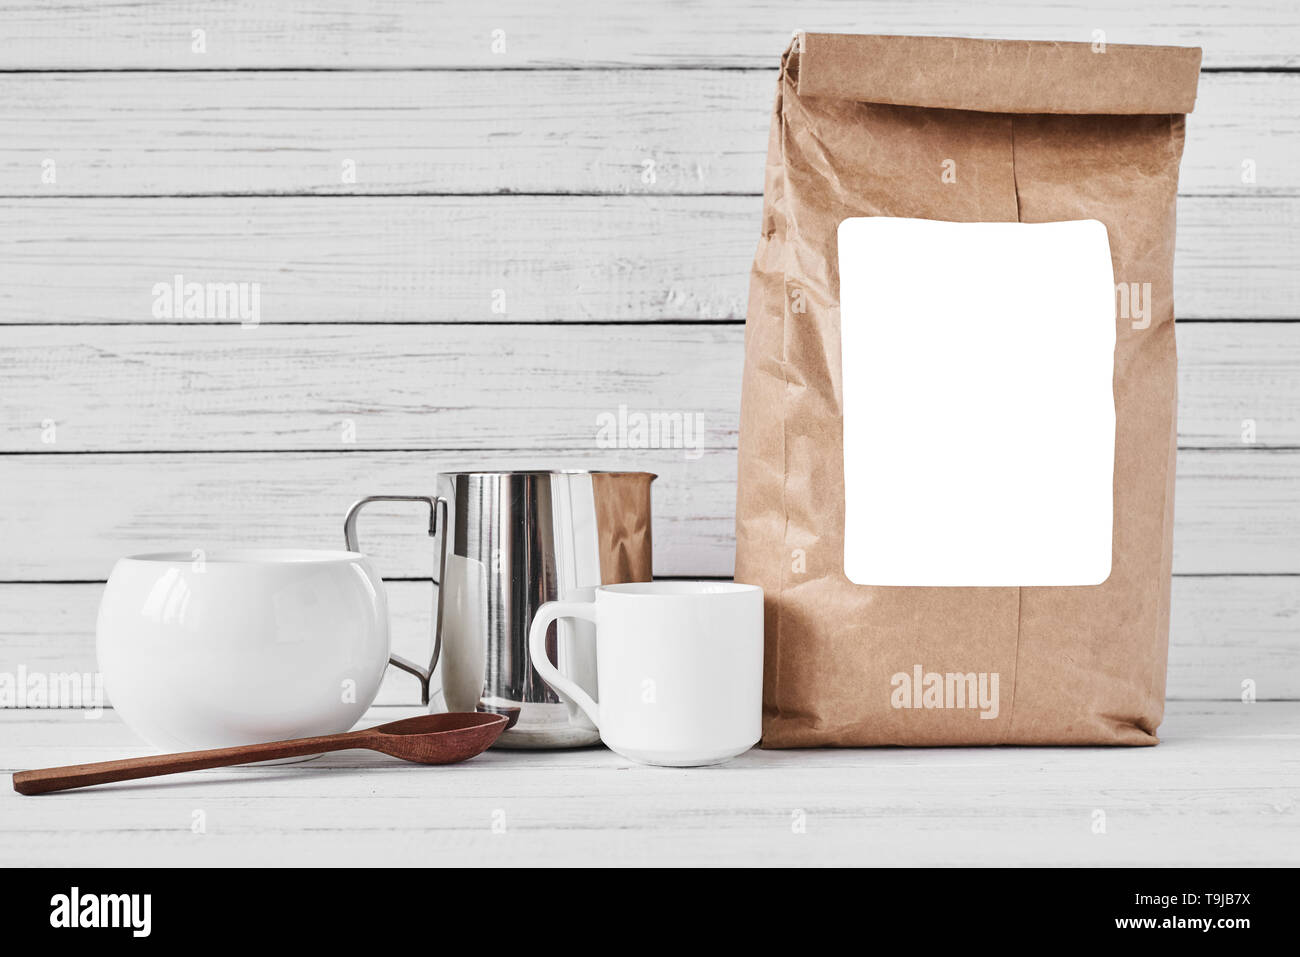 Coffee cup, craft paper bag and stainless pitcher on white background, copy space - Stock Image